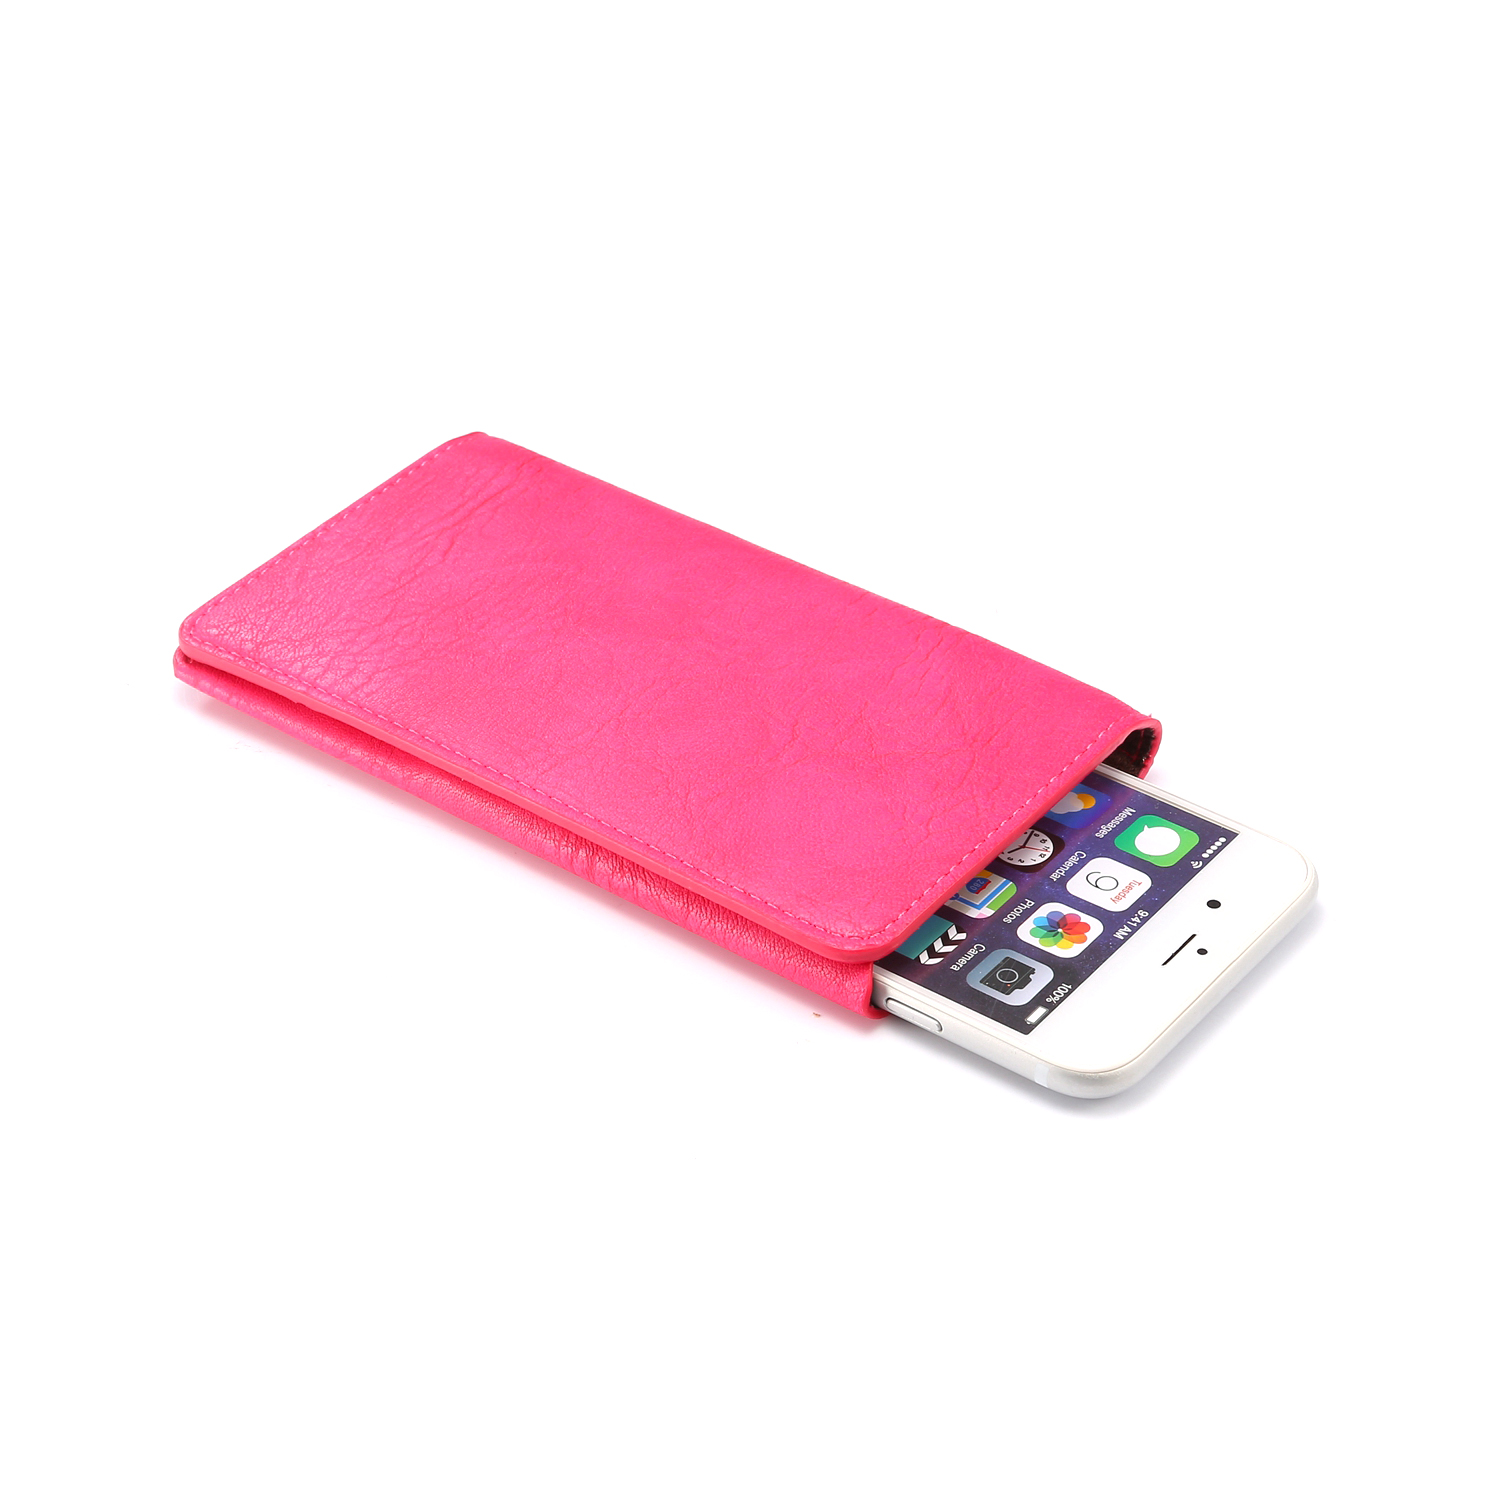 Universal Women Portable Texture Card Slot Phone Wallet Pouch Bag for iPhone 7 6s Mobile Phone 4.3~4.8 Inches